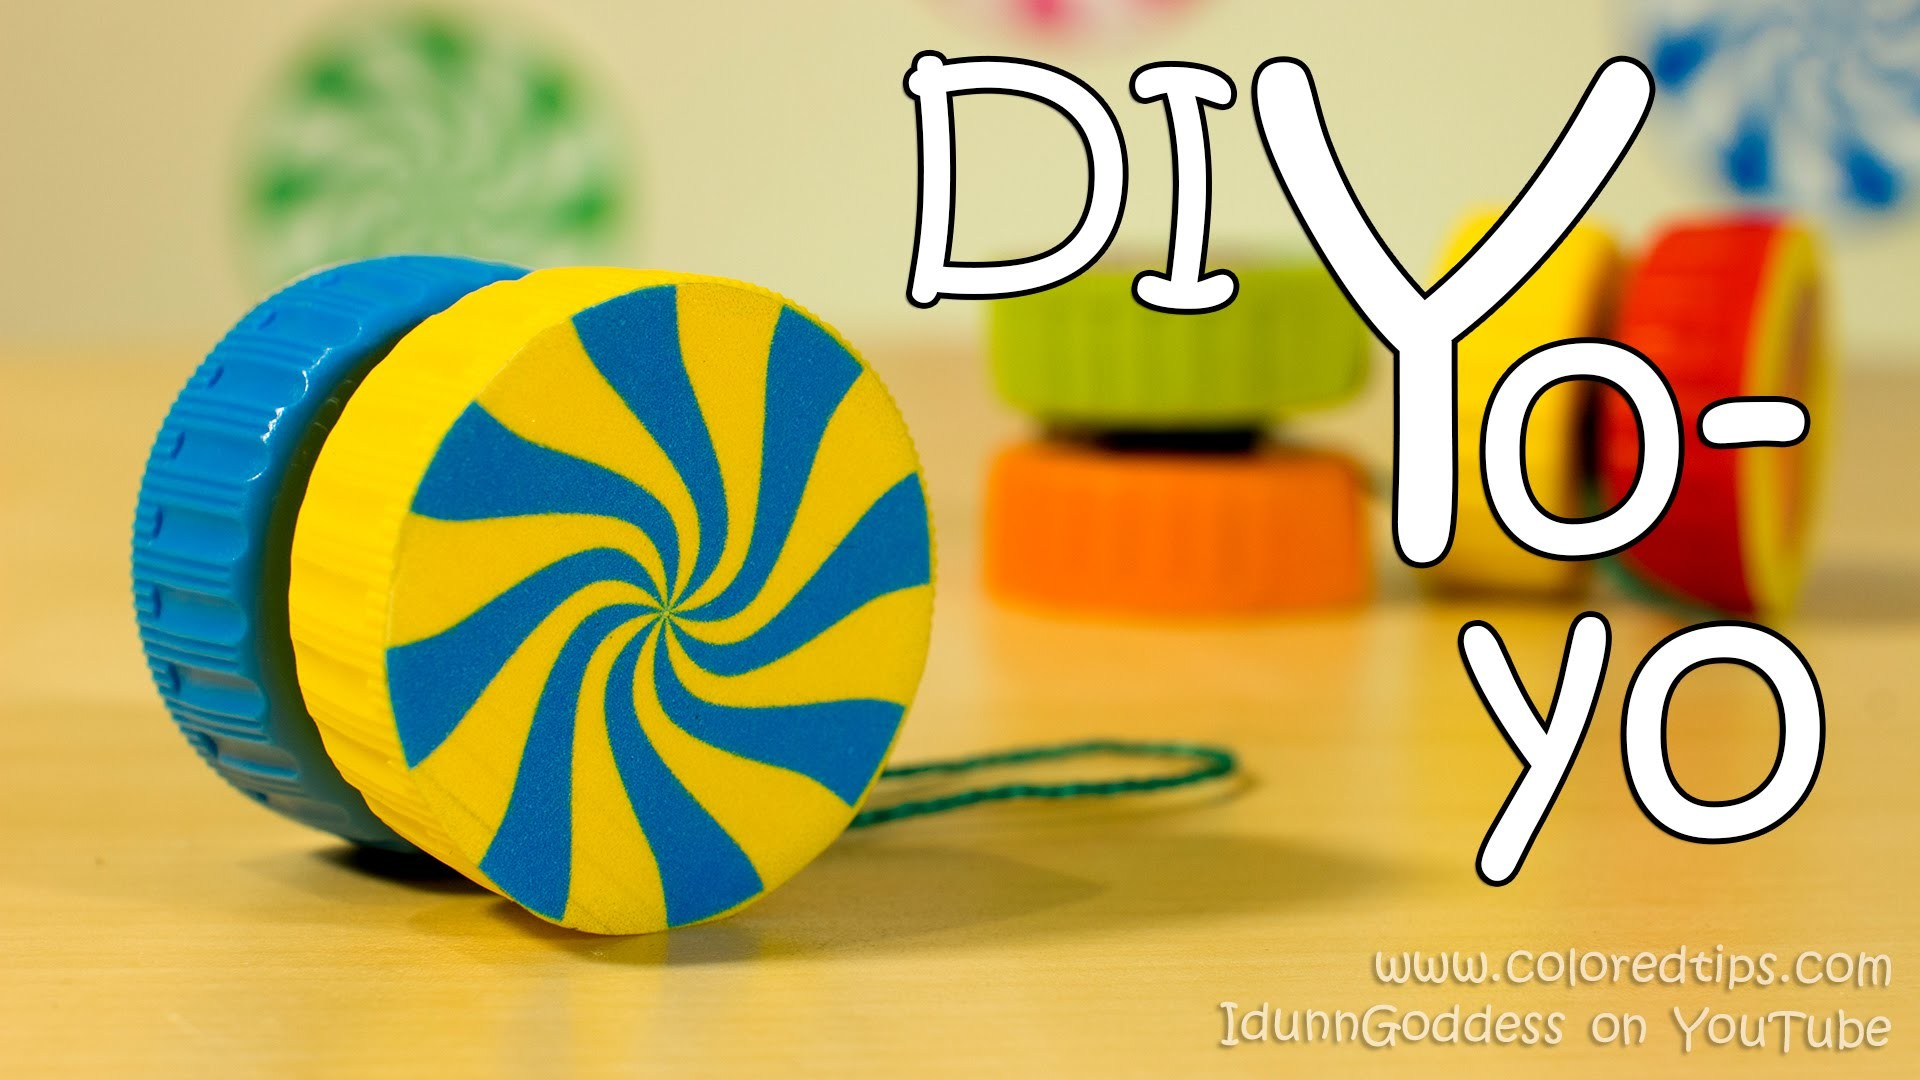 How To Make A Yo-Yo - Easy Way of DIY Yoyo Made Out Of 2 Plastic Caps